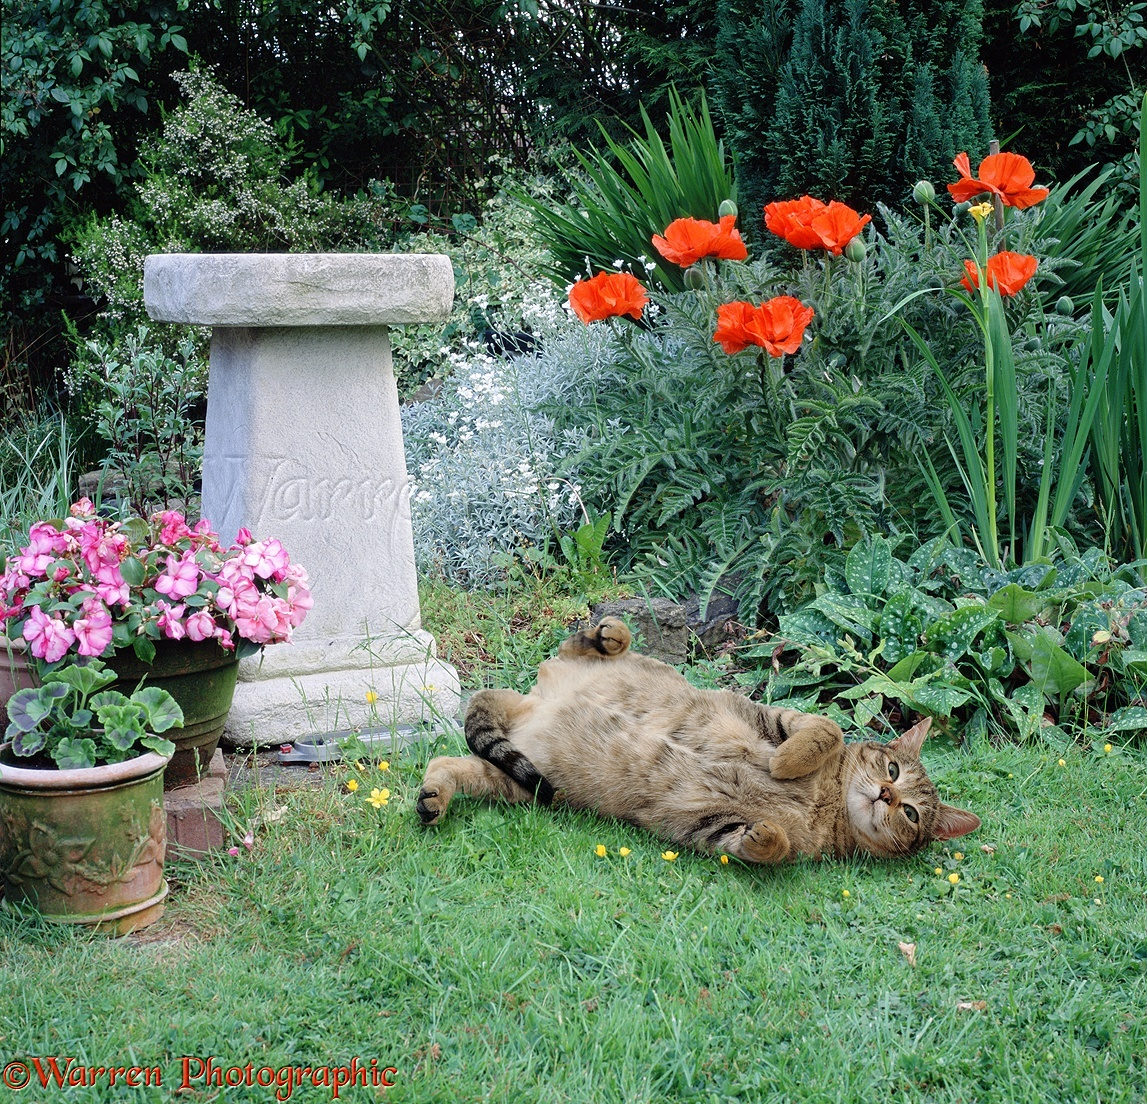 Cat rolling in a garden photo WP01413